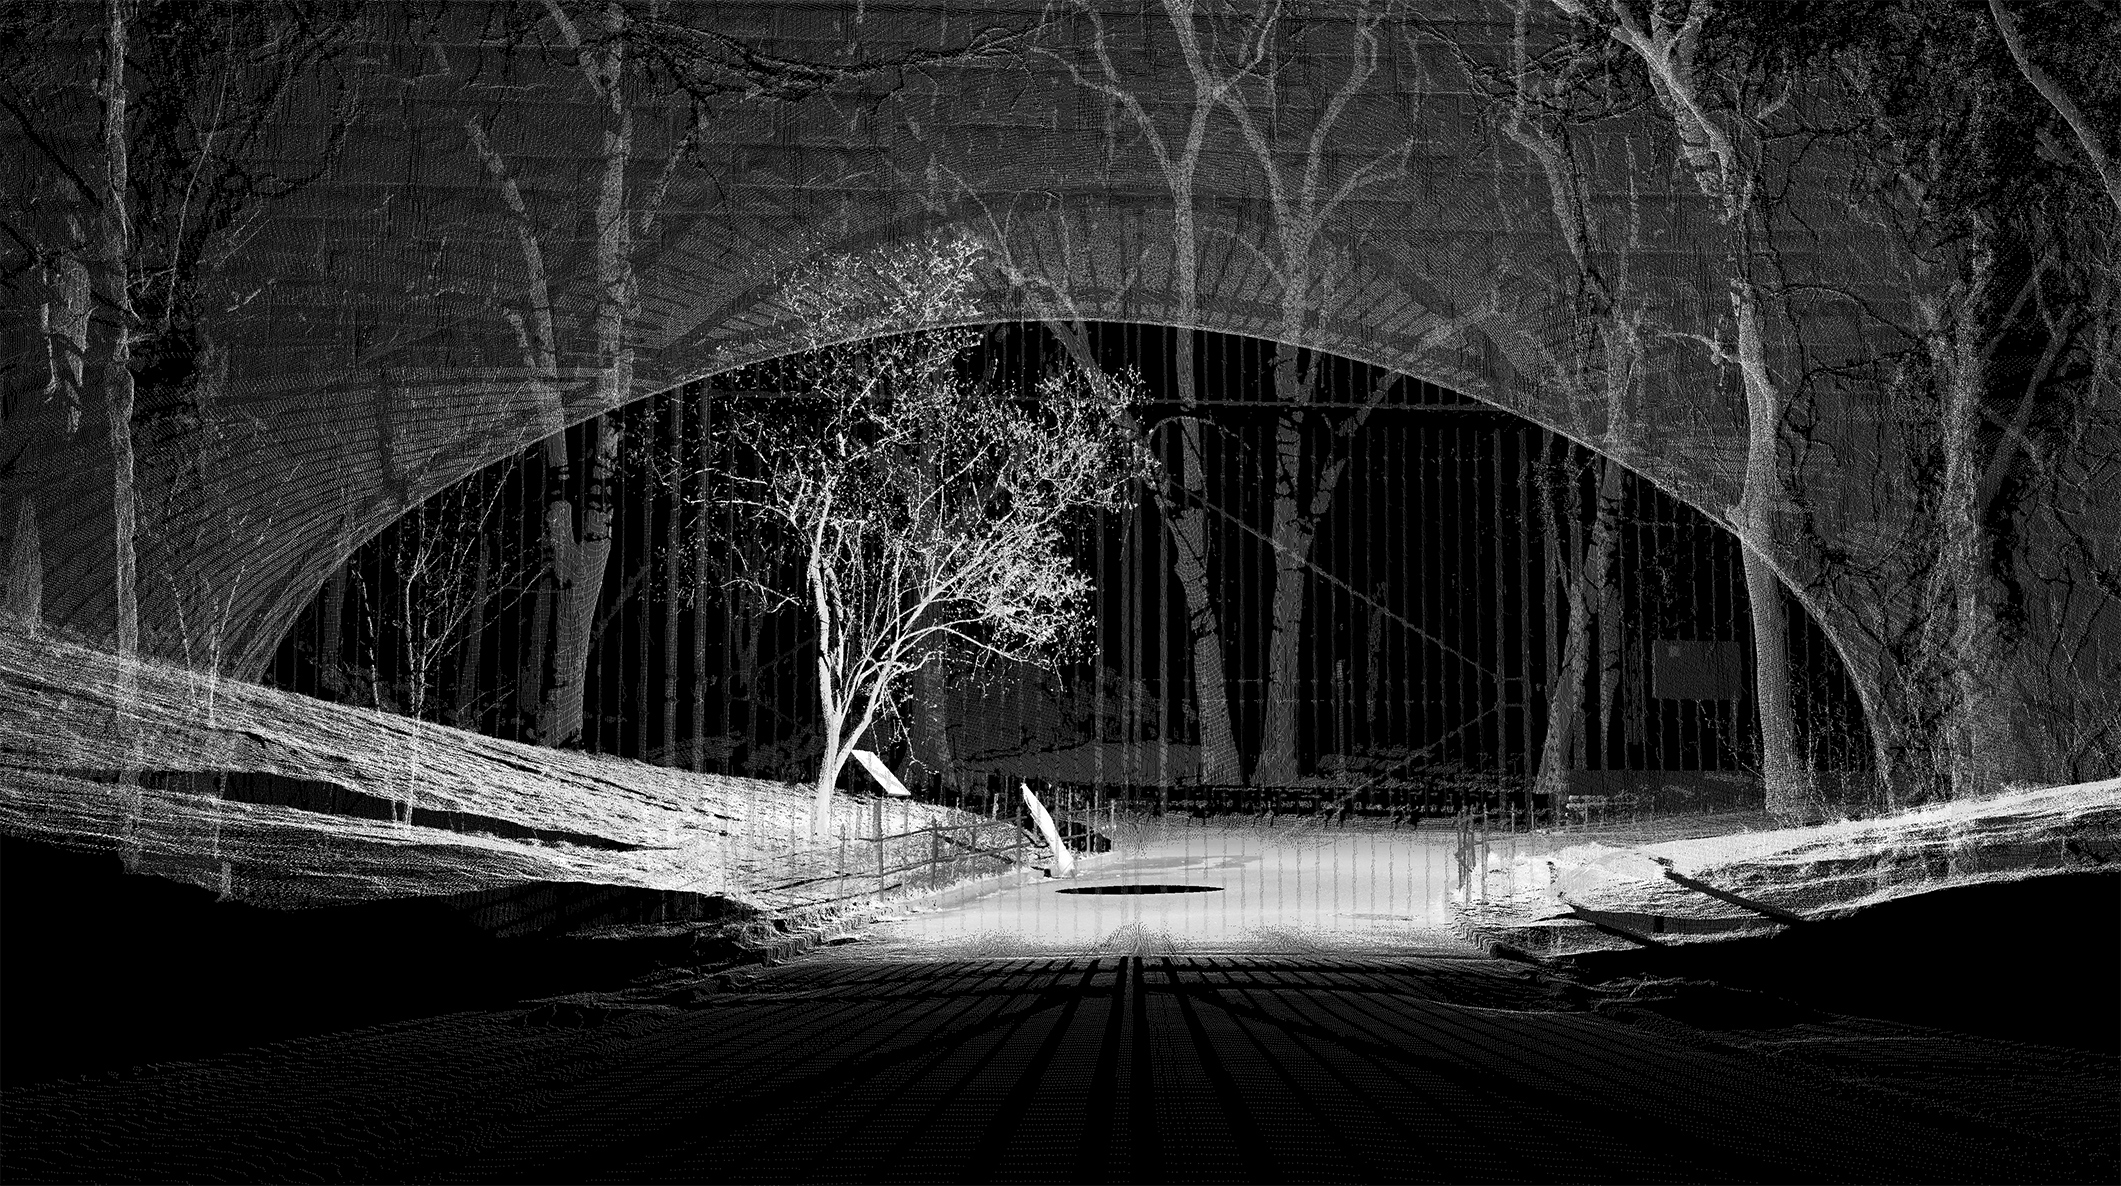 mynd-workshop-central-park-arch3-3D-laser-scanning-point-cloud-new-york.jpg